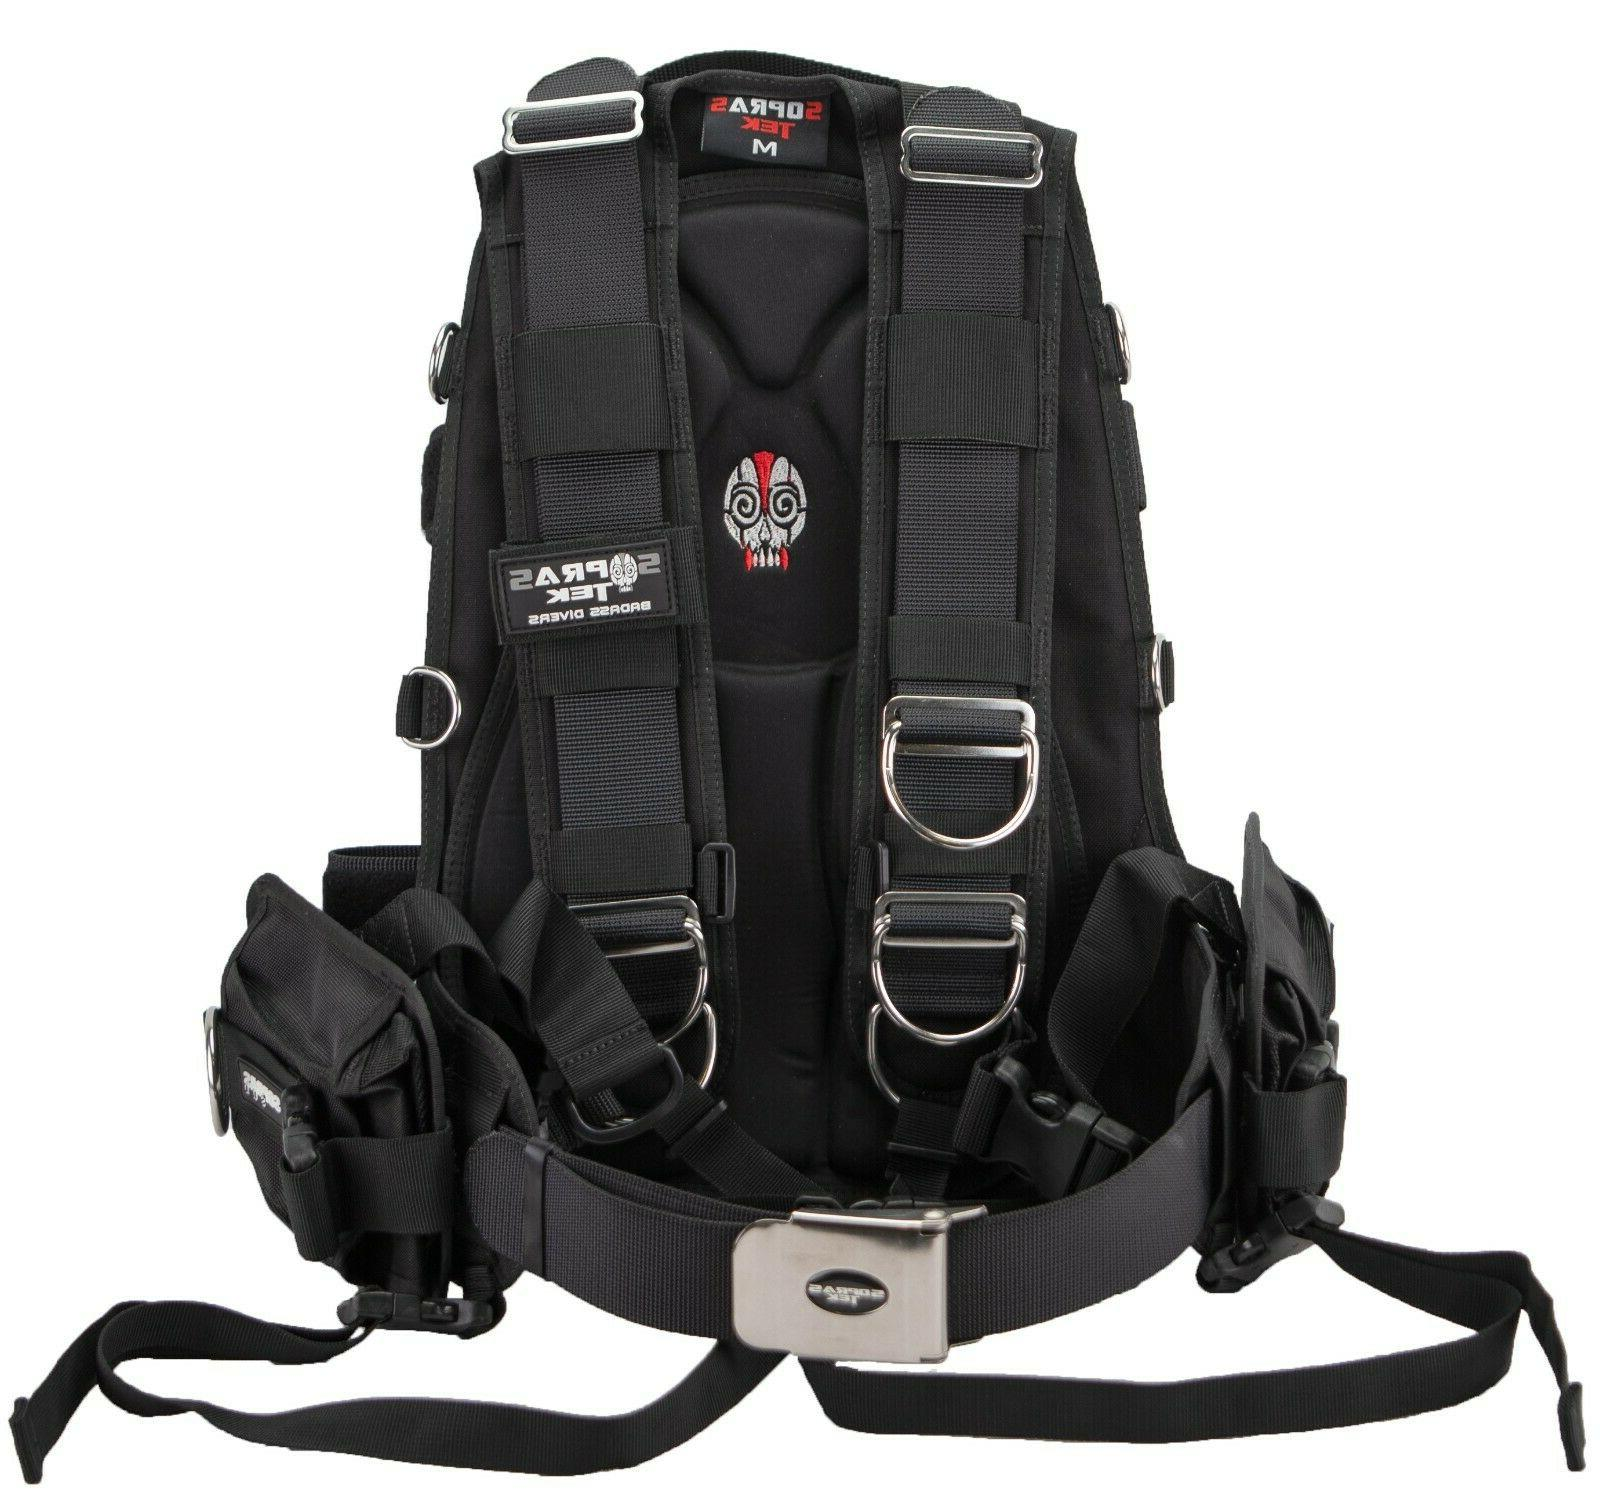 24012 soft harness with double crotch scuba